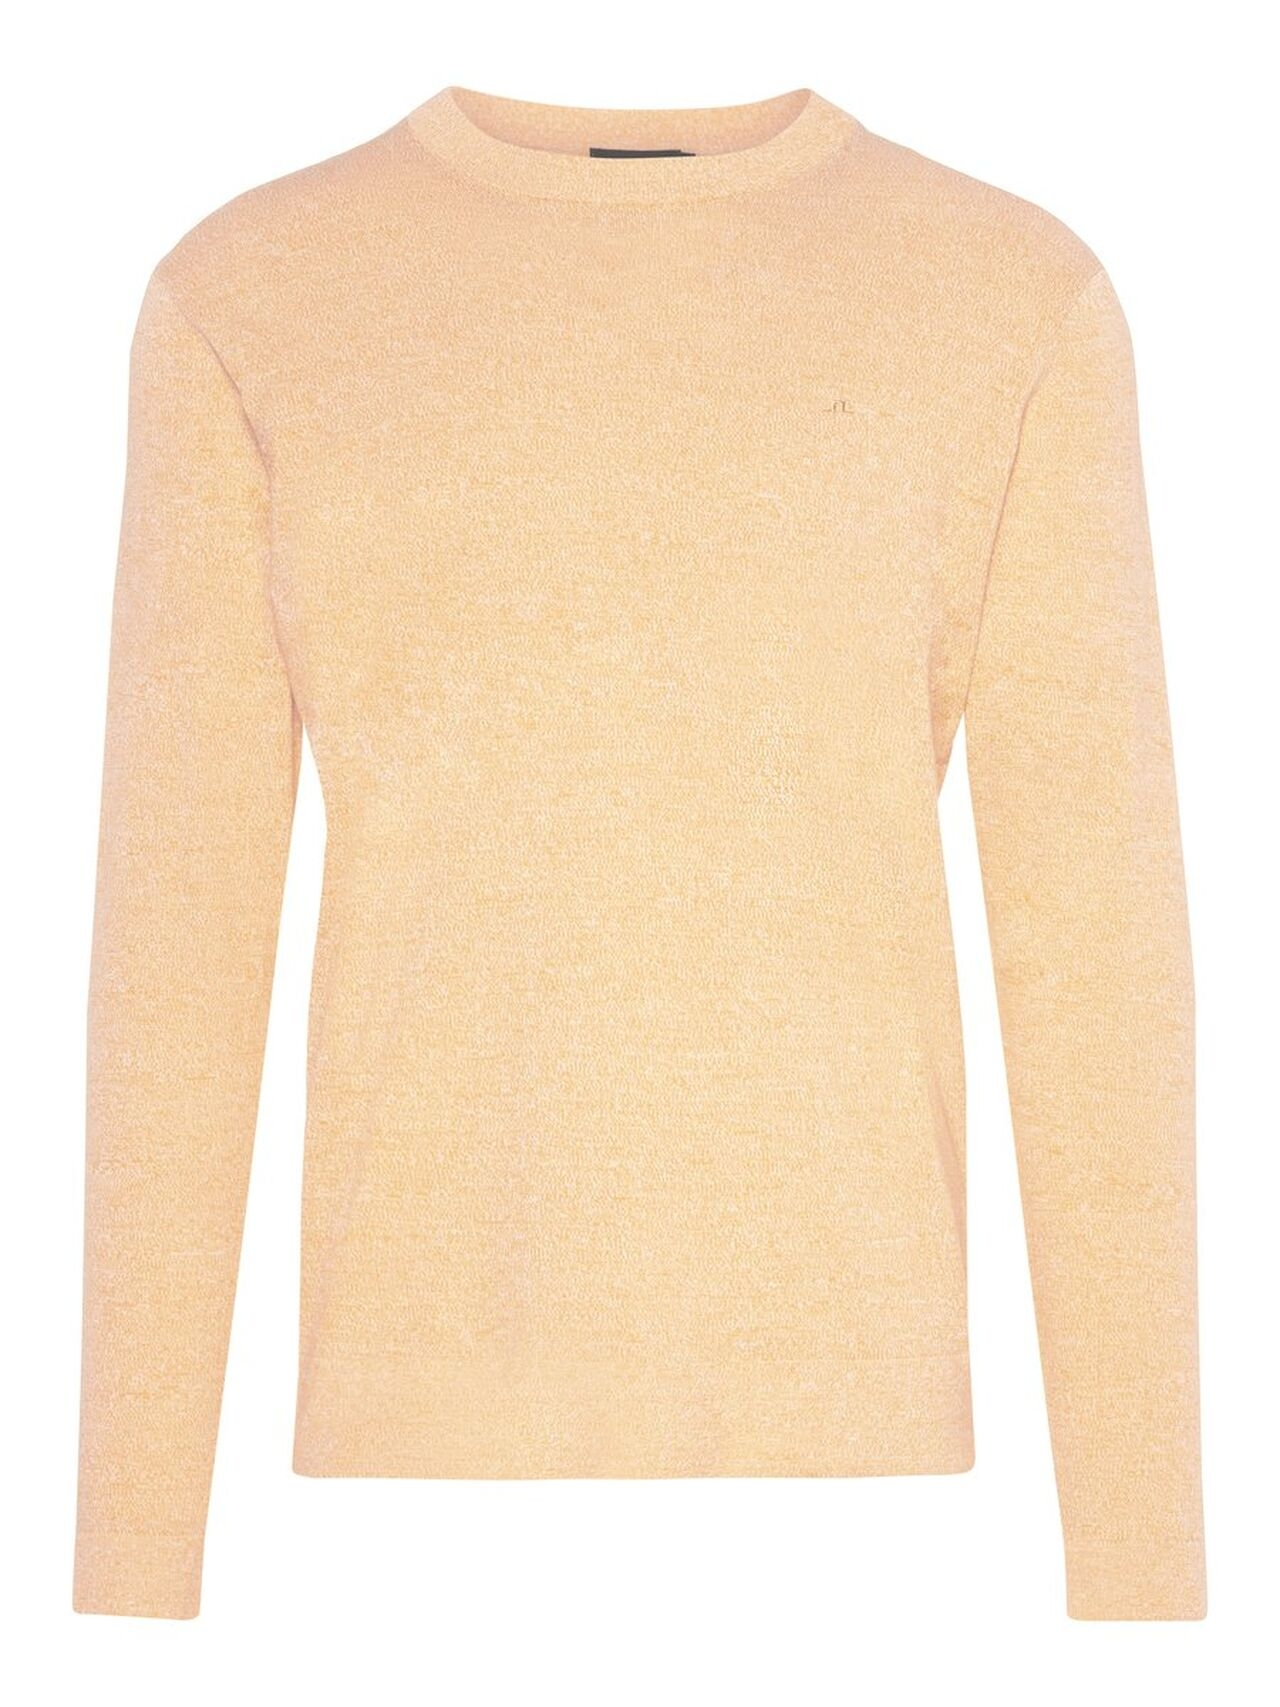 J.LINDEBERG Niklas R-neck Refined Cotton Sweater Man Orange